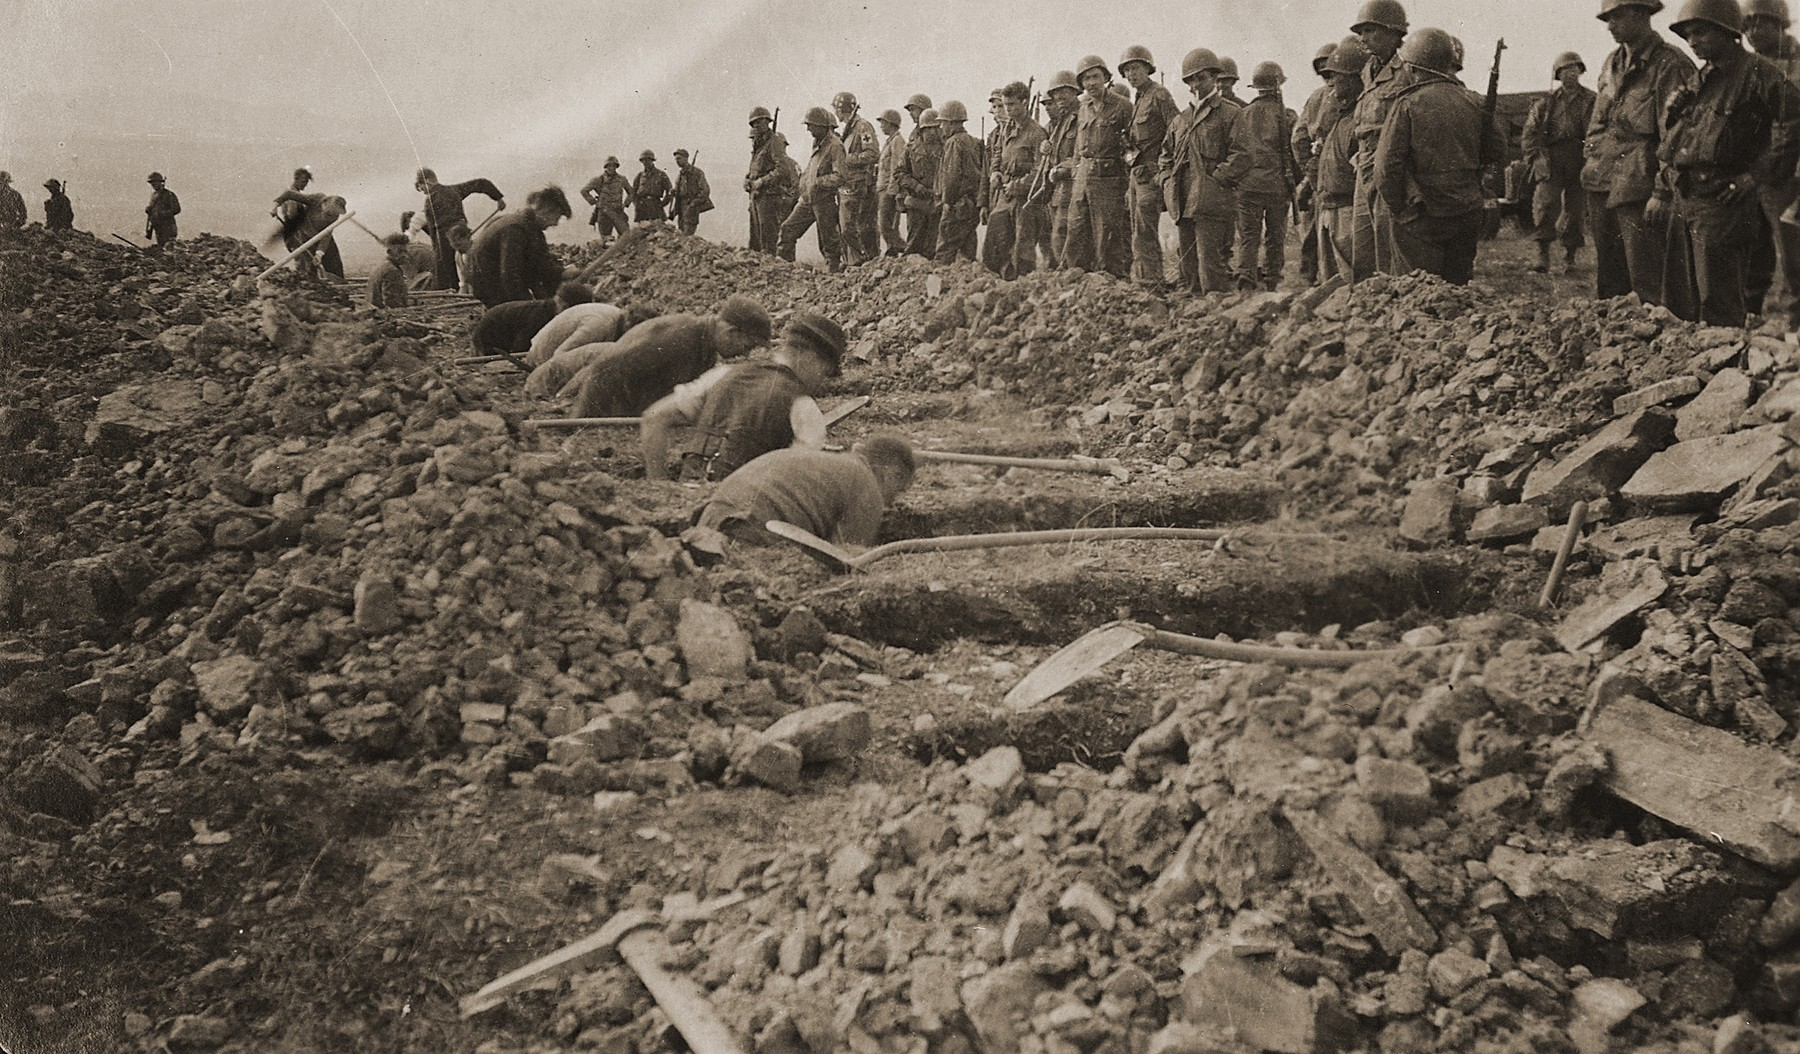 American troops look on as German civilians from nearby towns dig graves for corpses found in the Ohrdruf concentration camp.